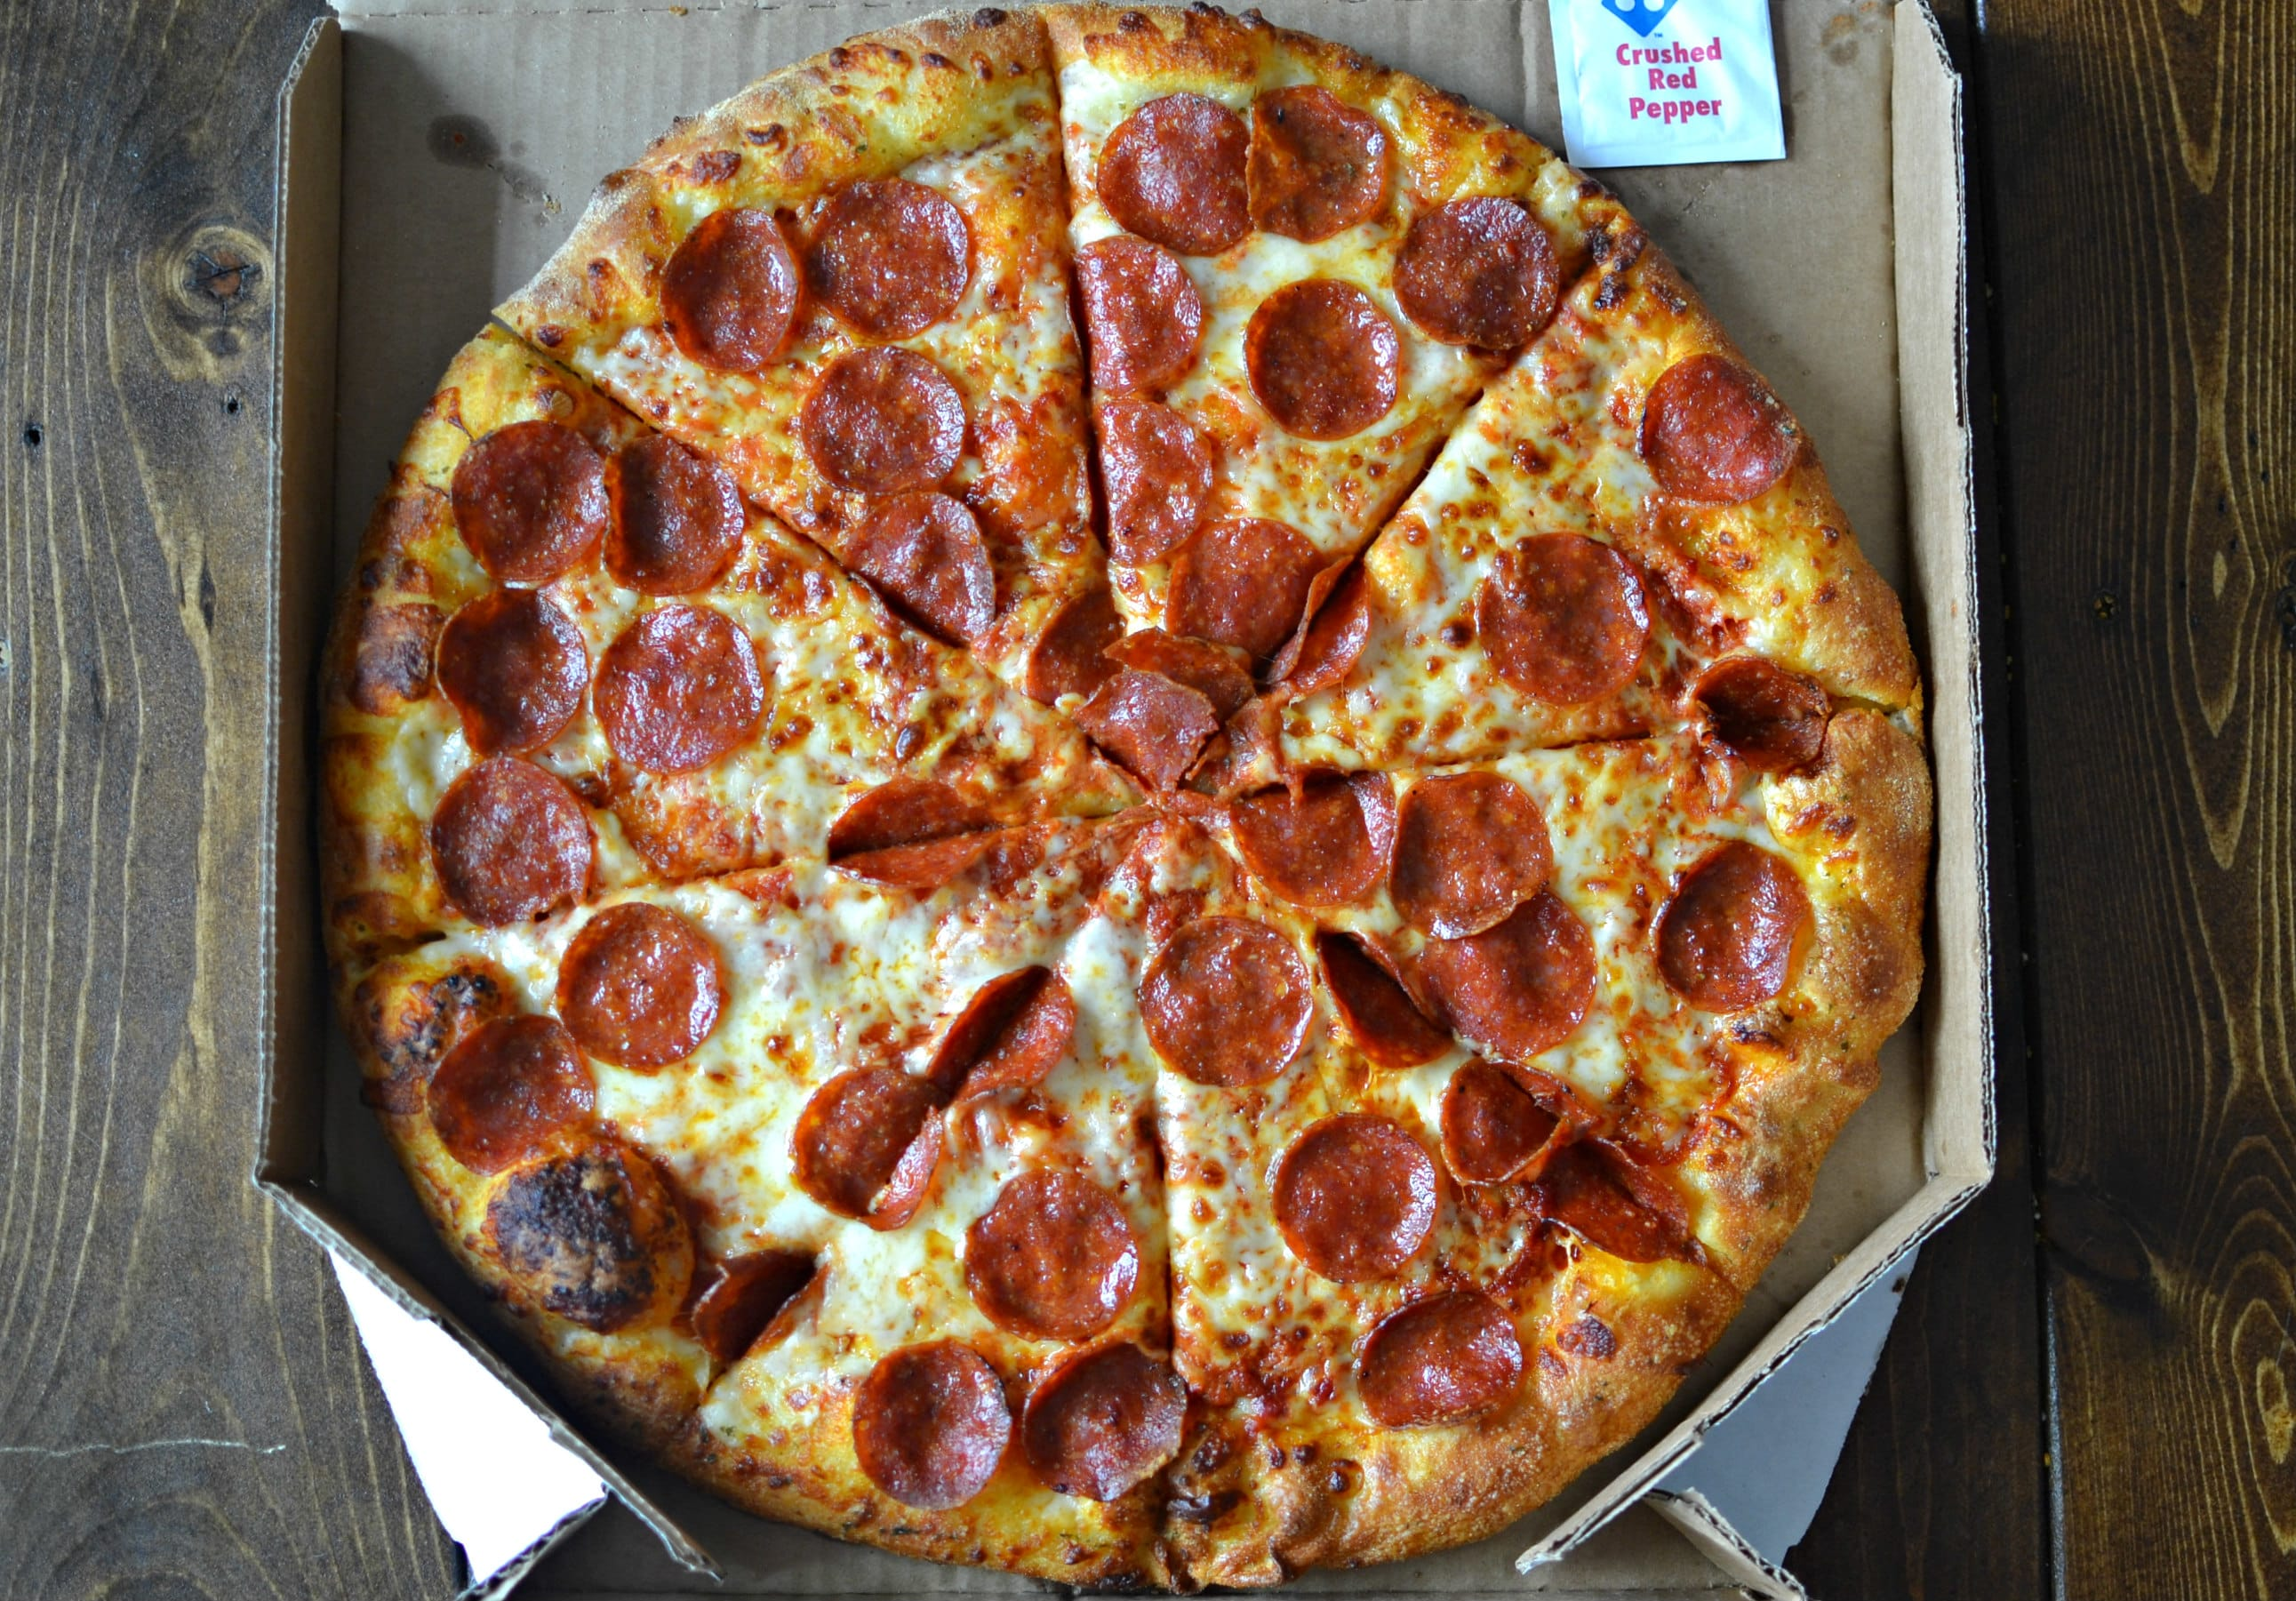 Pizza Hut Large Pizza Size >> Domino's Vs. Pizza Hut: Crowning the Fast-Food Pizza King | First We Feast